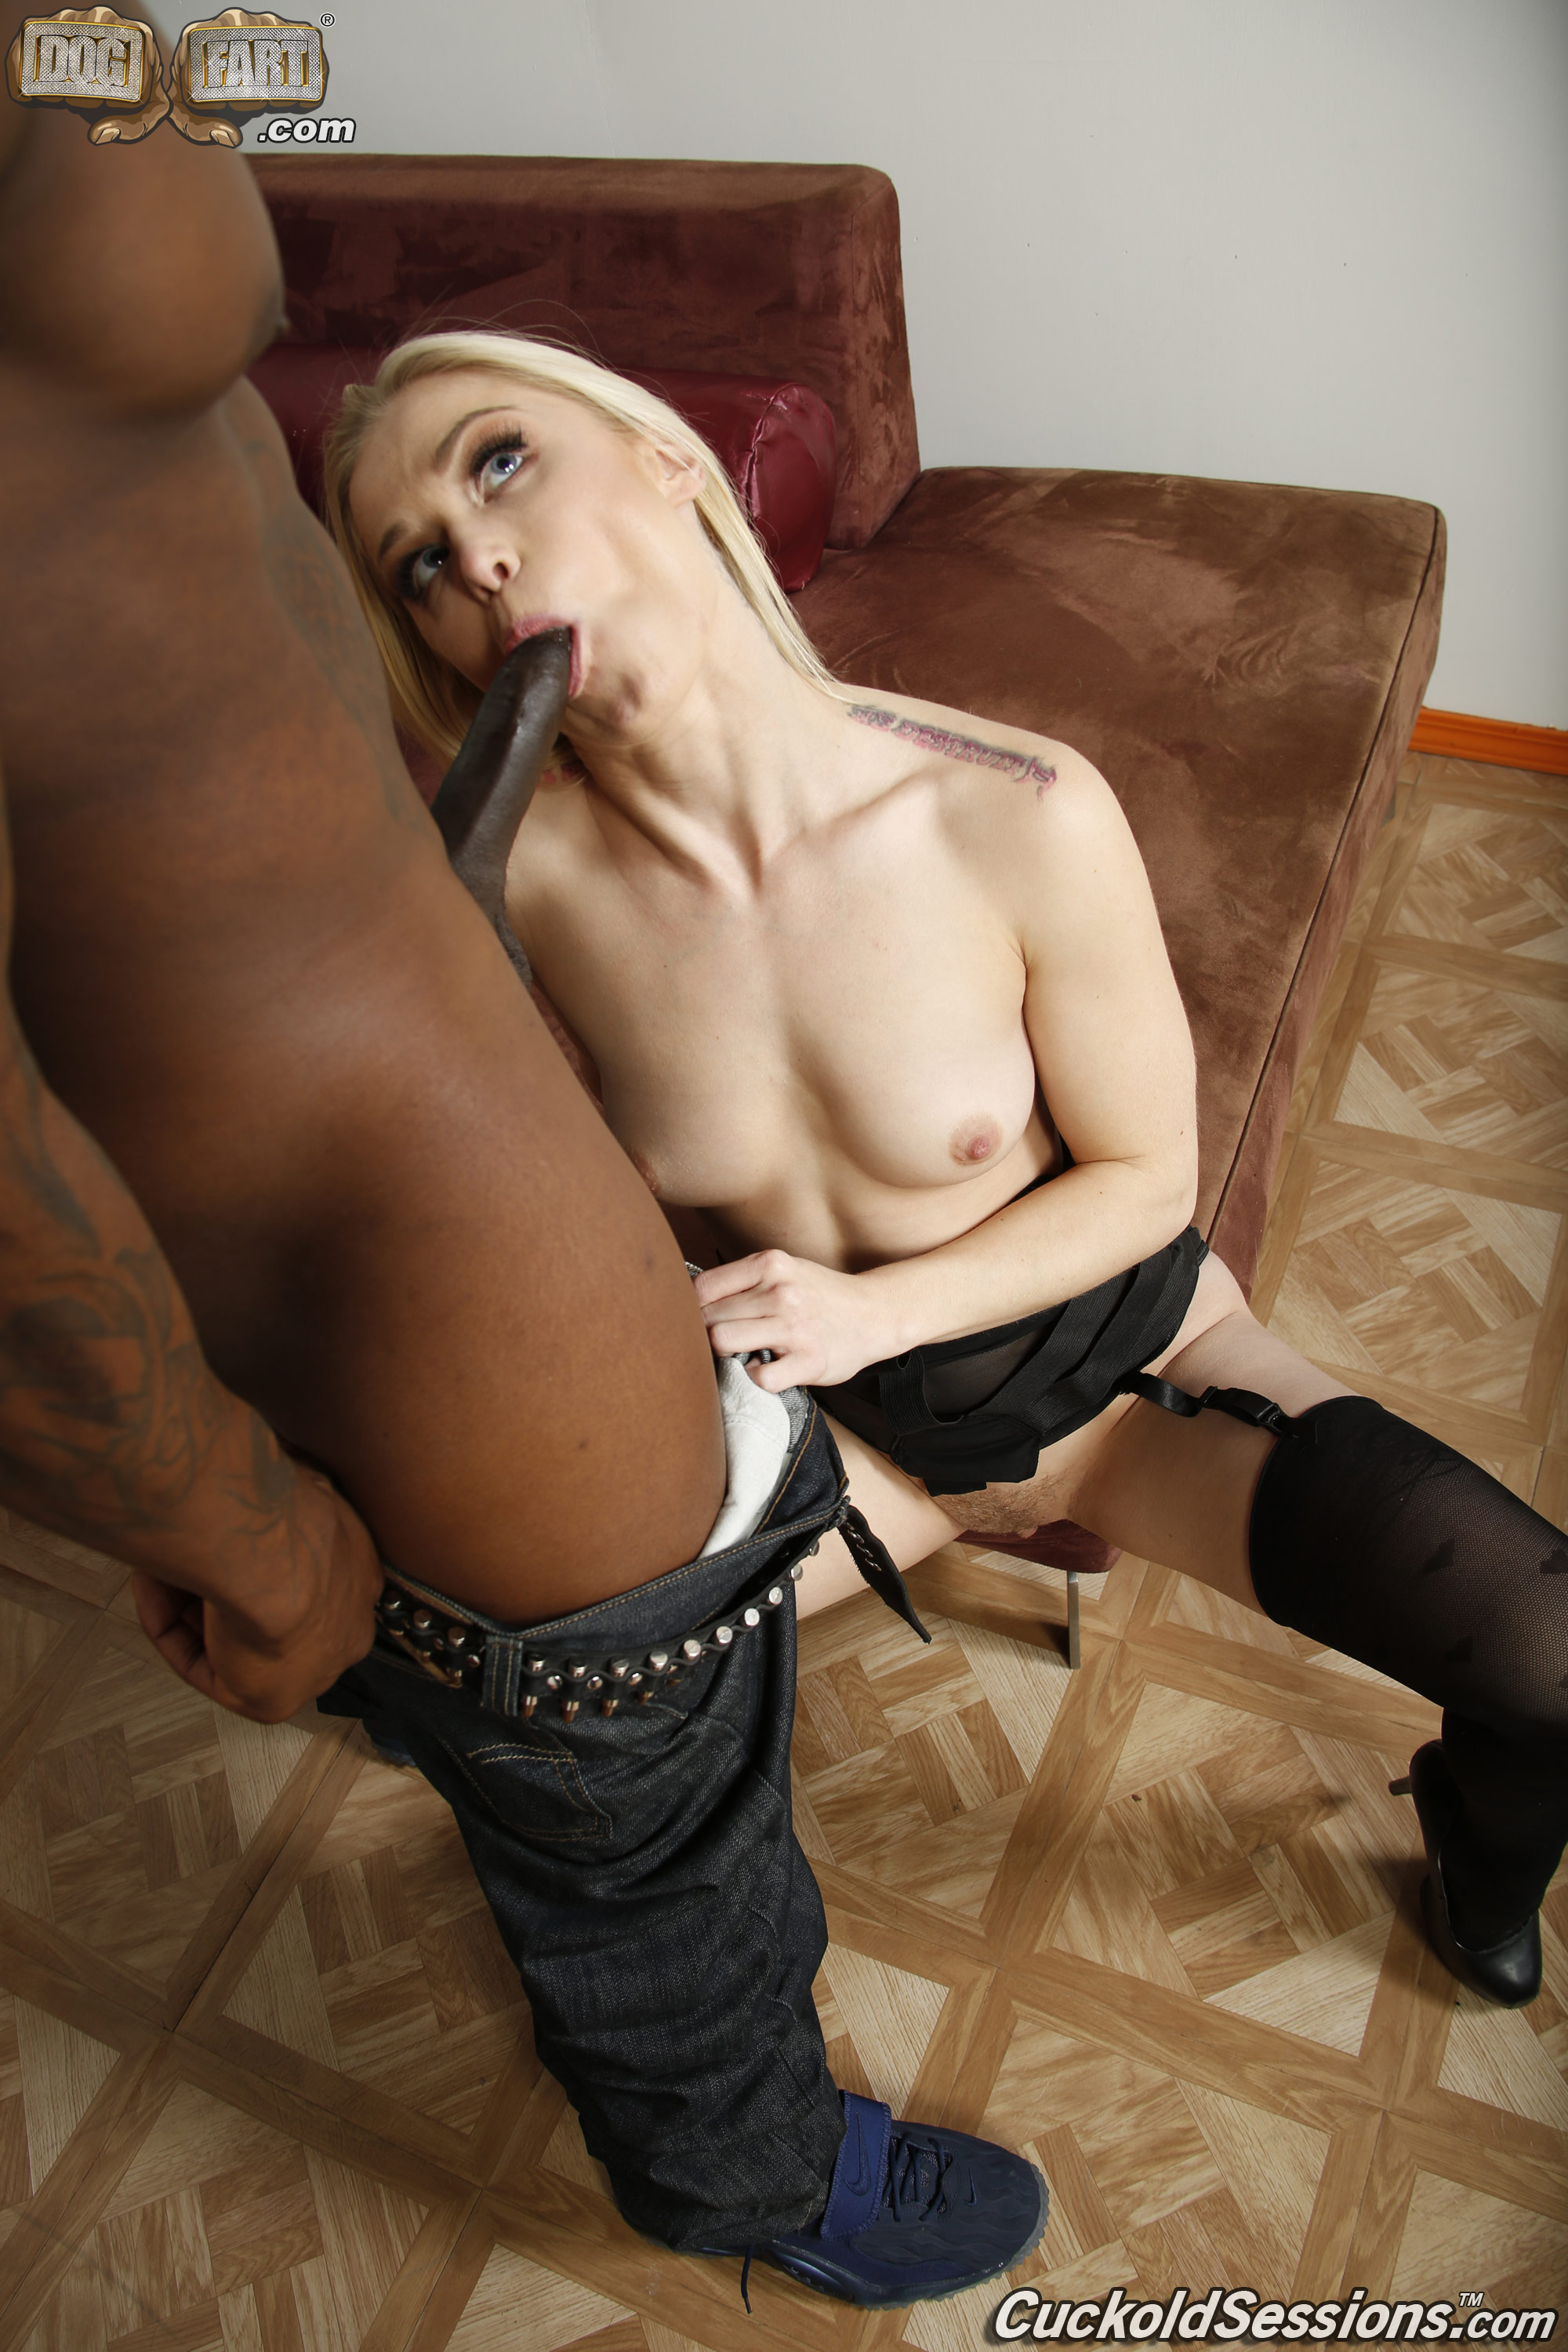 galleries CuckoldSessions content ash hollywood pic 10